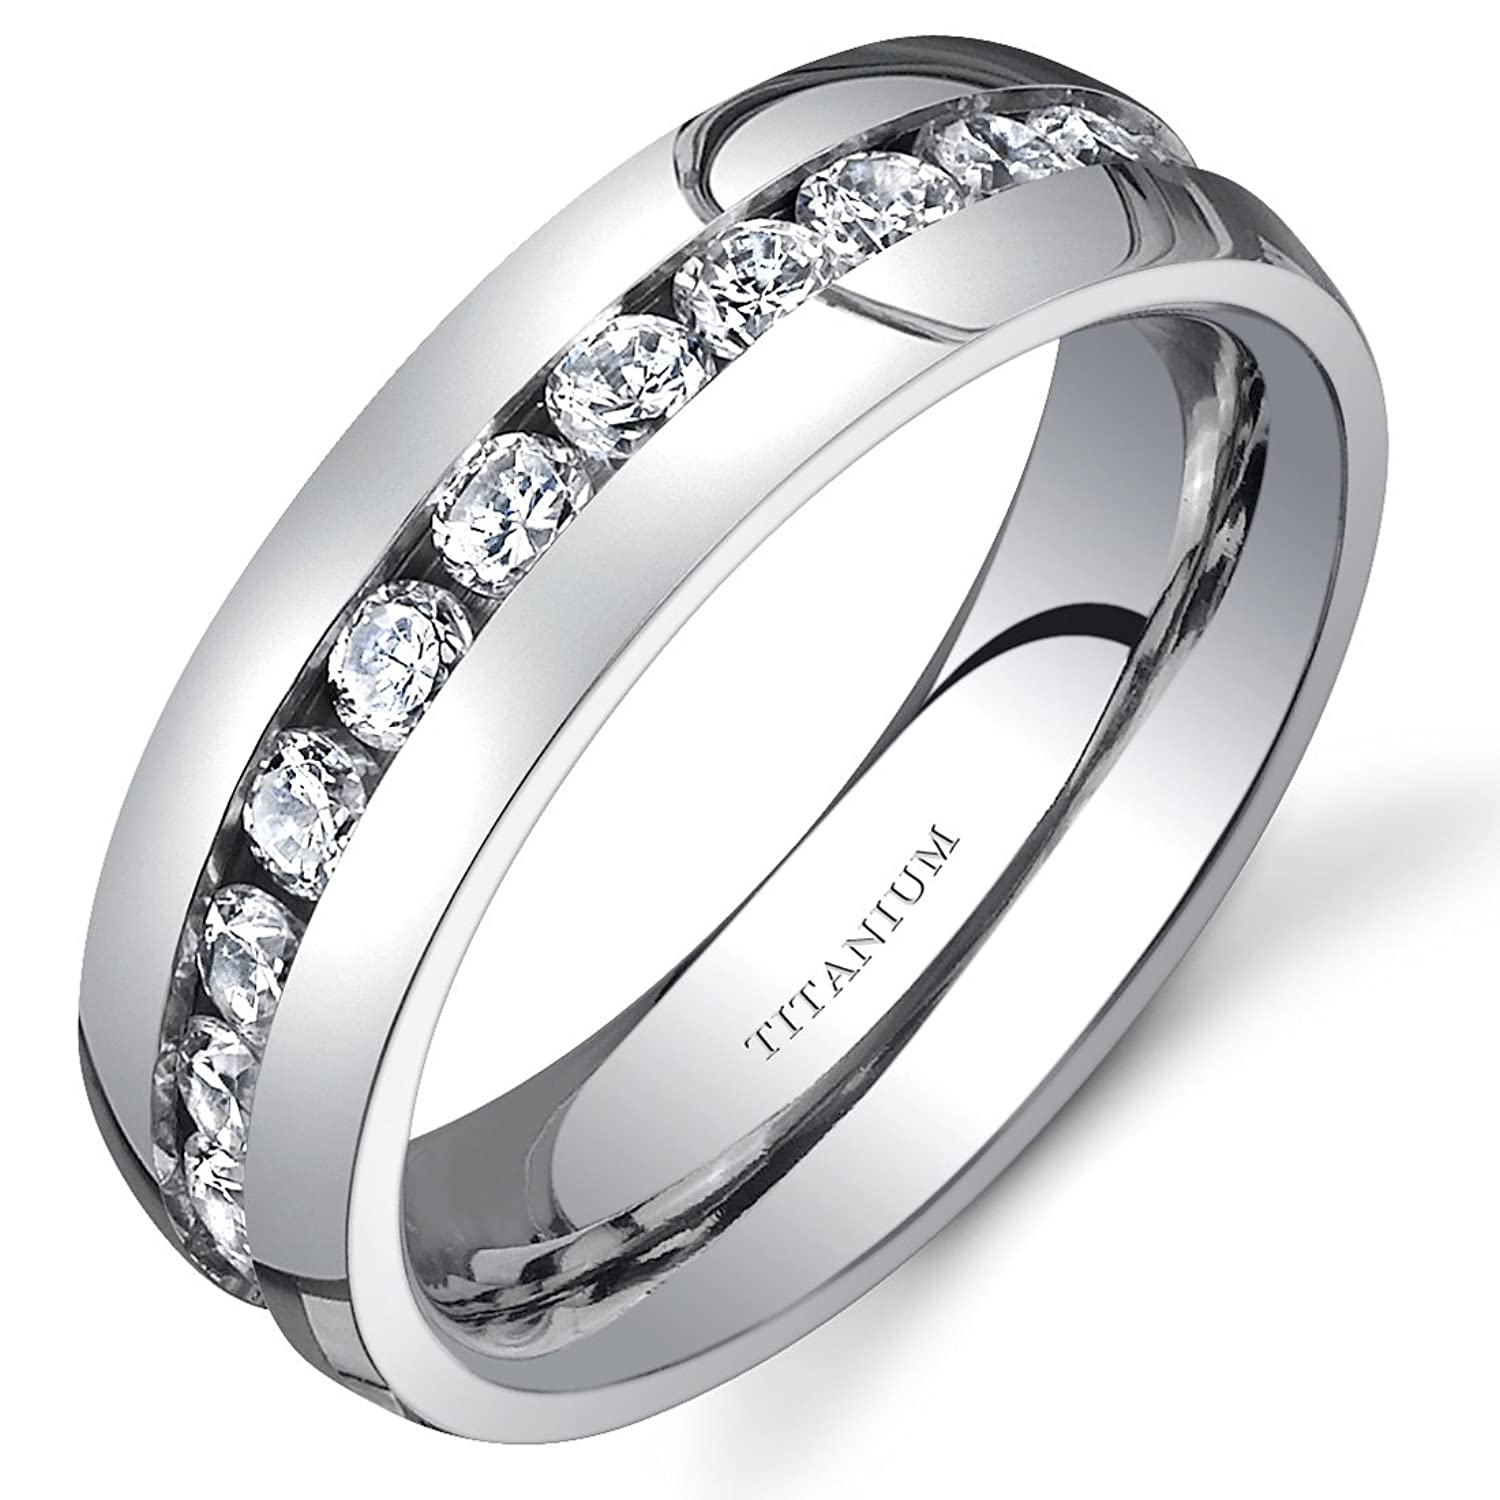 Titanium Womens 6 mm Eternity Band with Cubic Zirconia Available Size 5 to 8